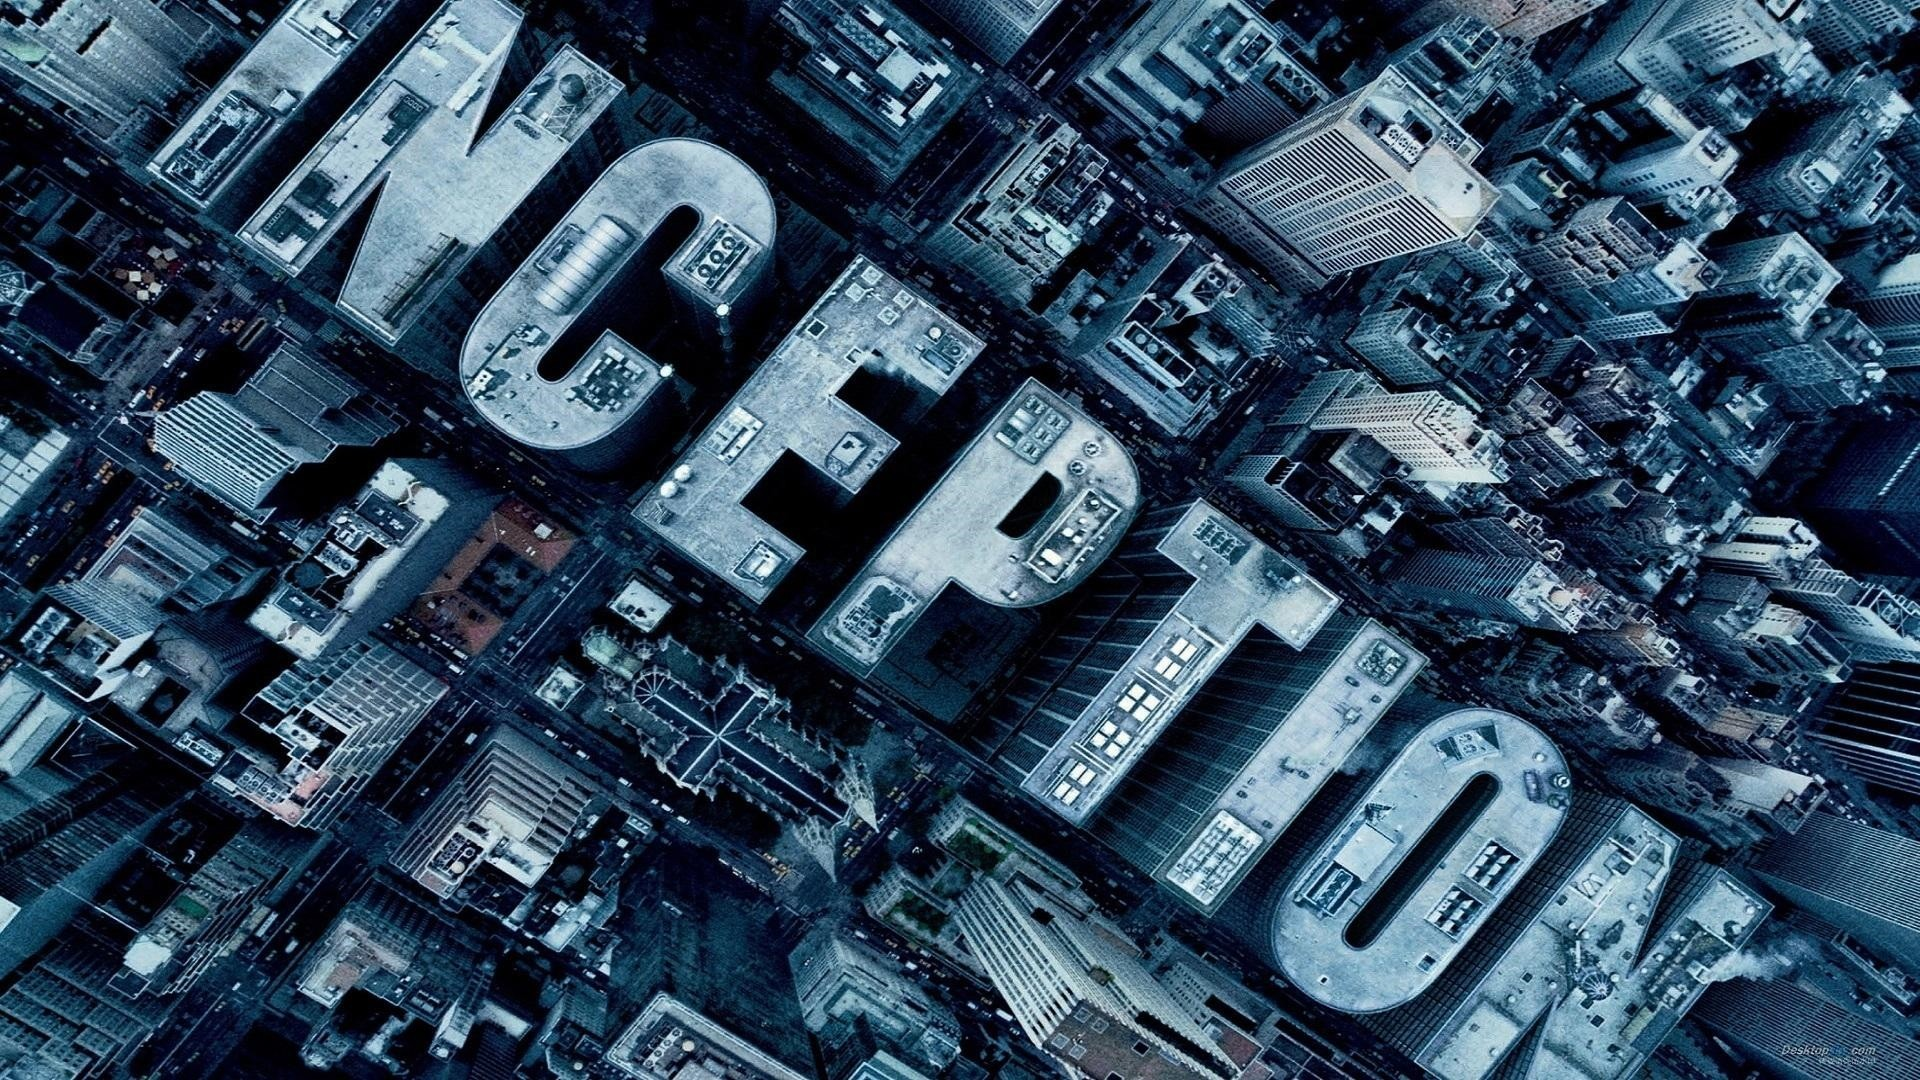 Inception Wallpaper Download Full